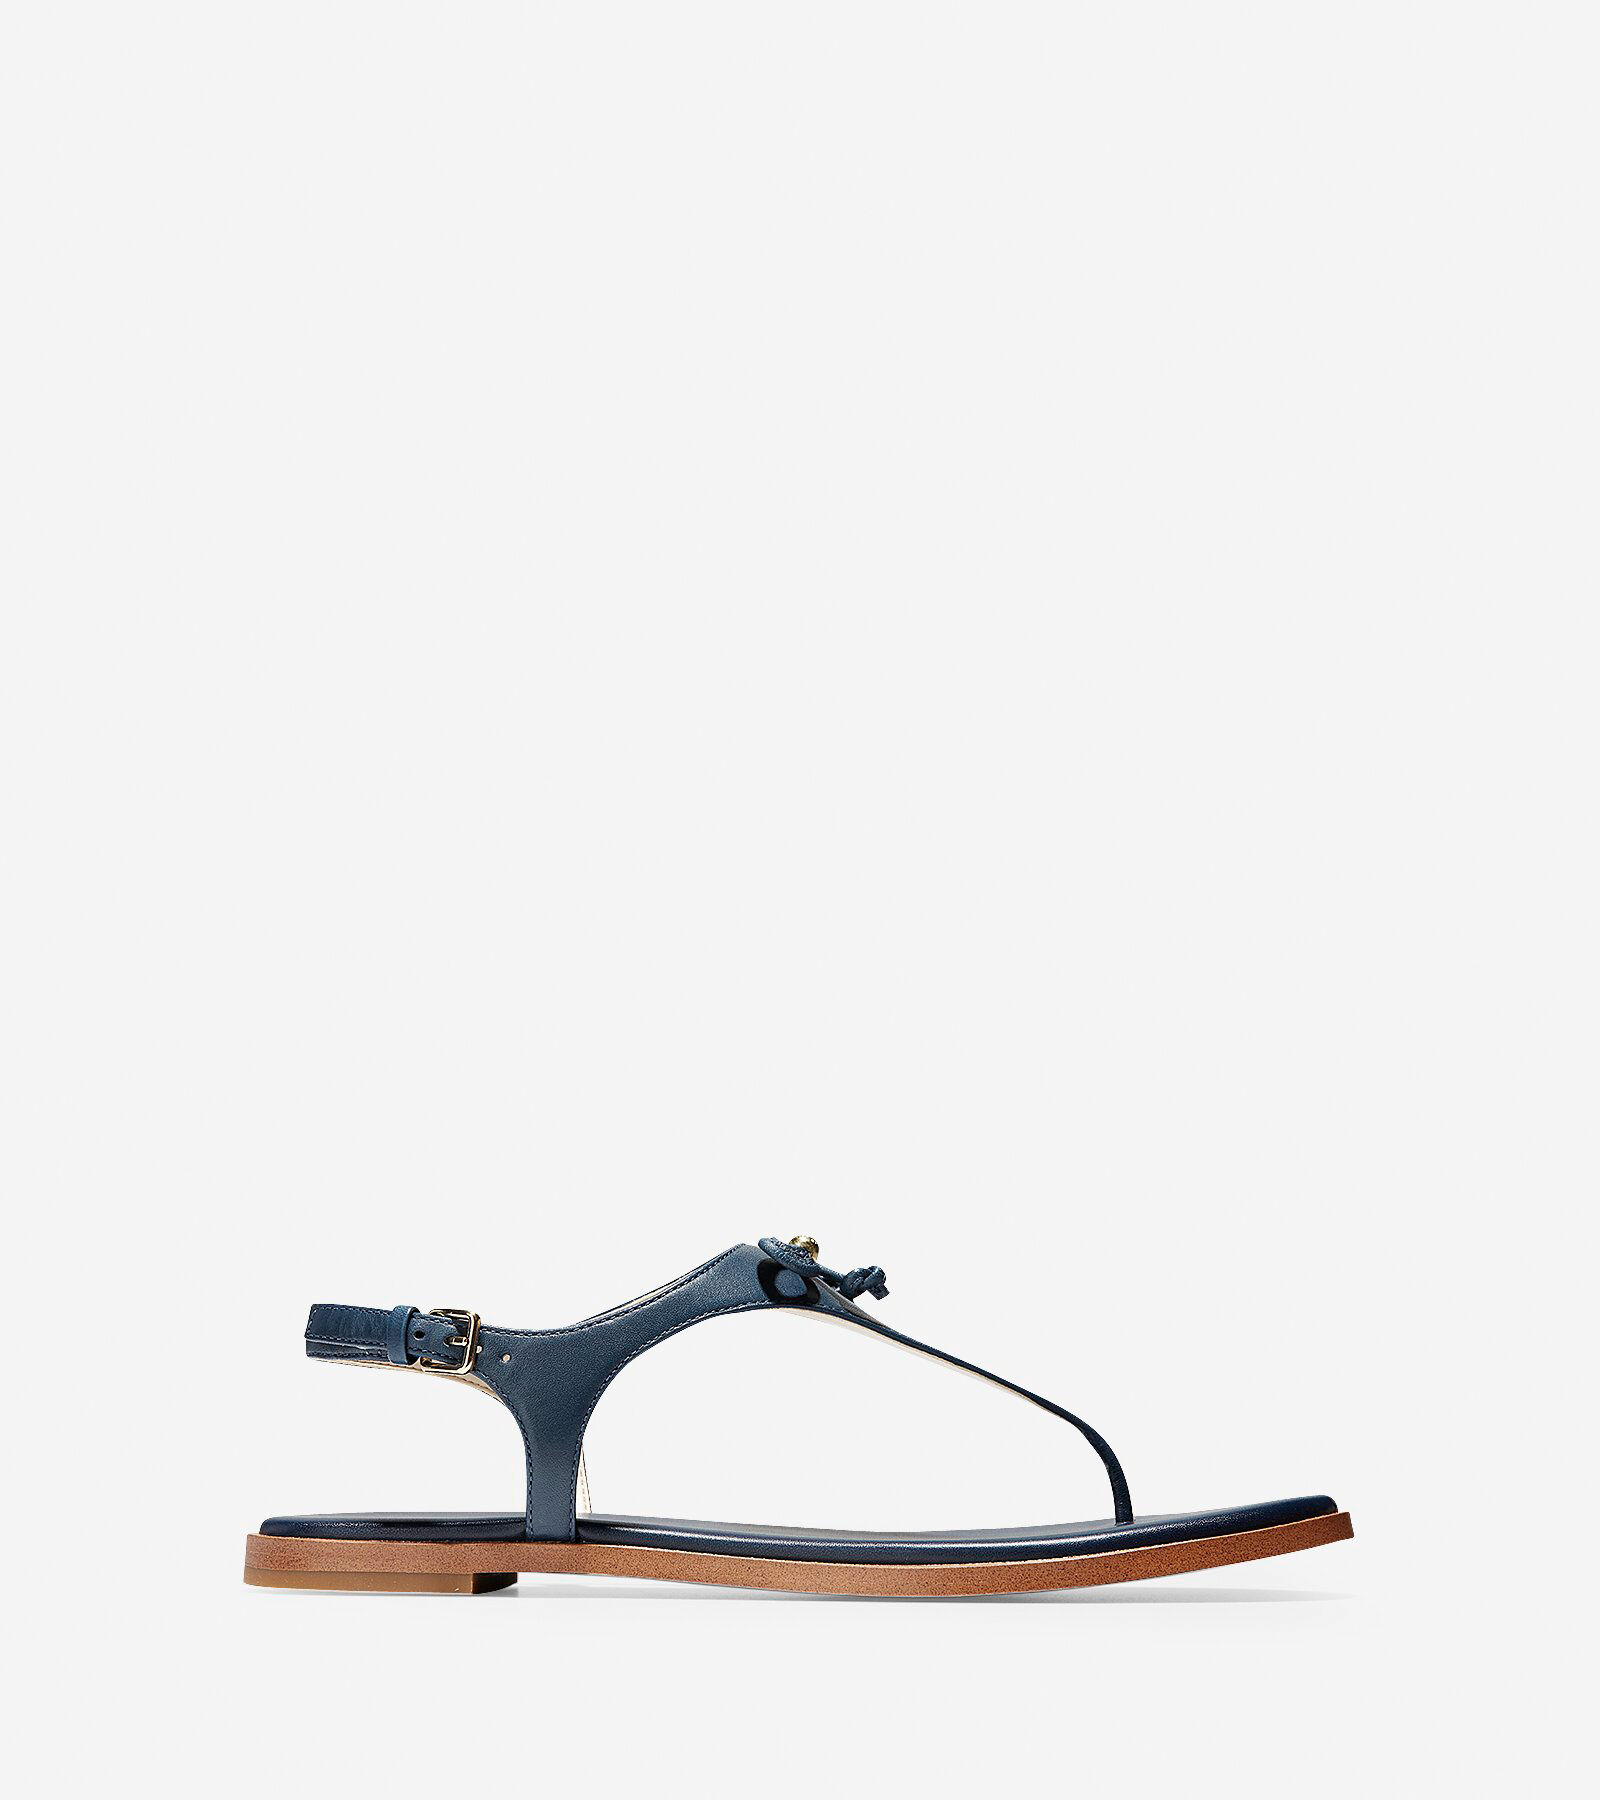 outlet footlocker pictures Cole Haan Women's Findra Thong... sale order 2015 new online 3rszik